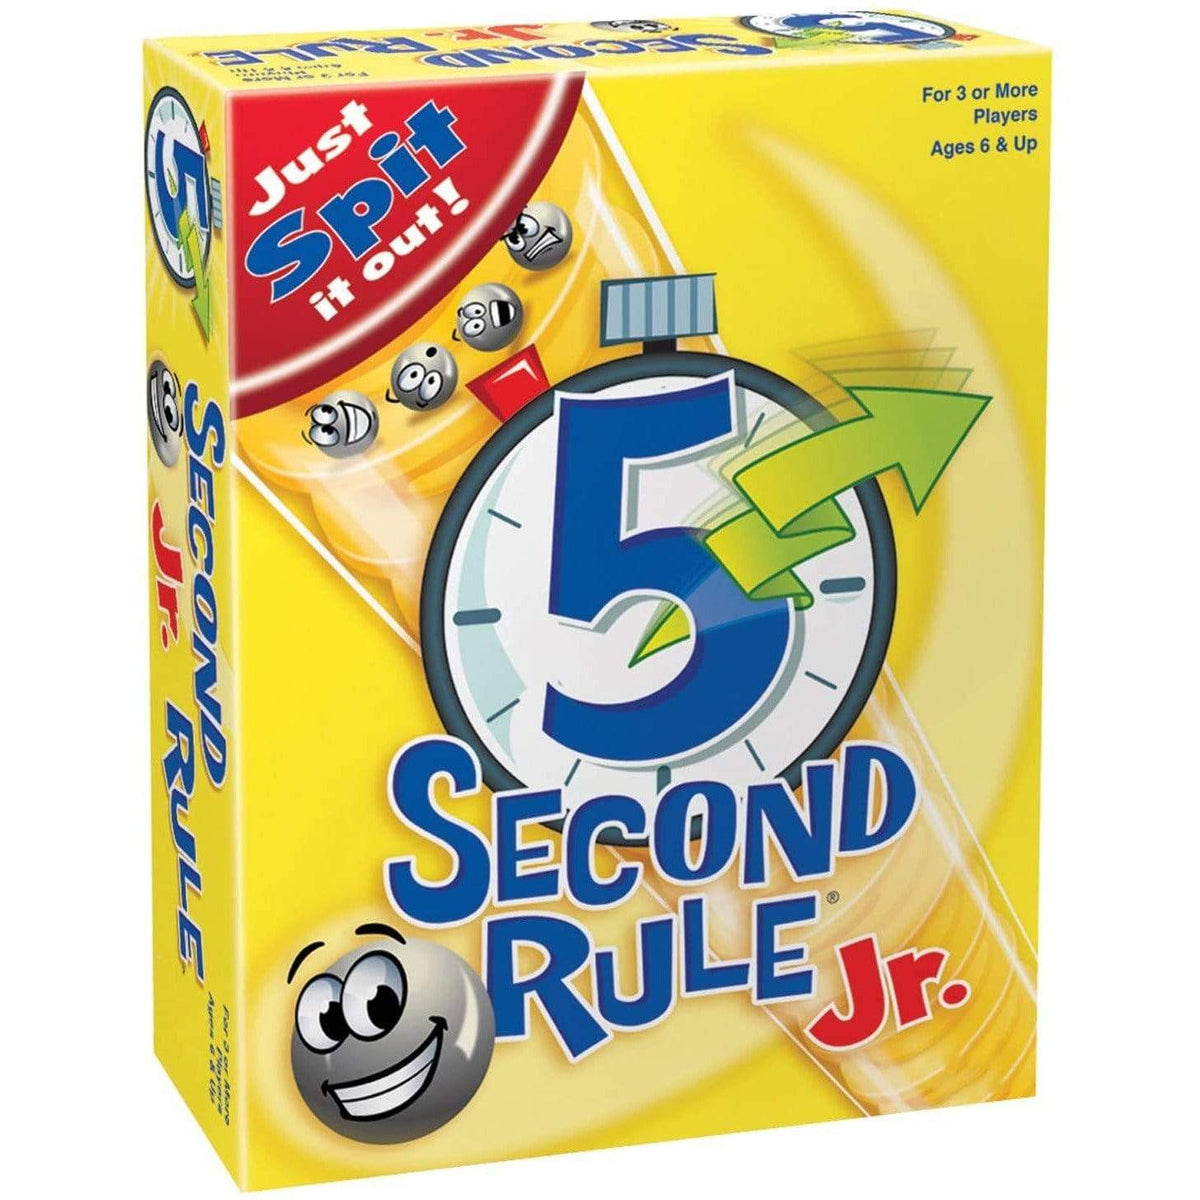 5 Second Rule Junior Alliance Games Board Games